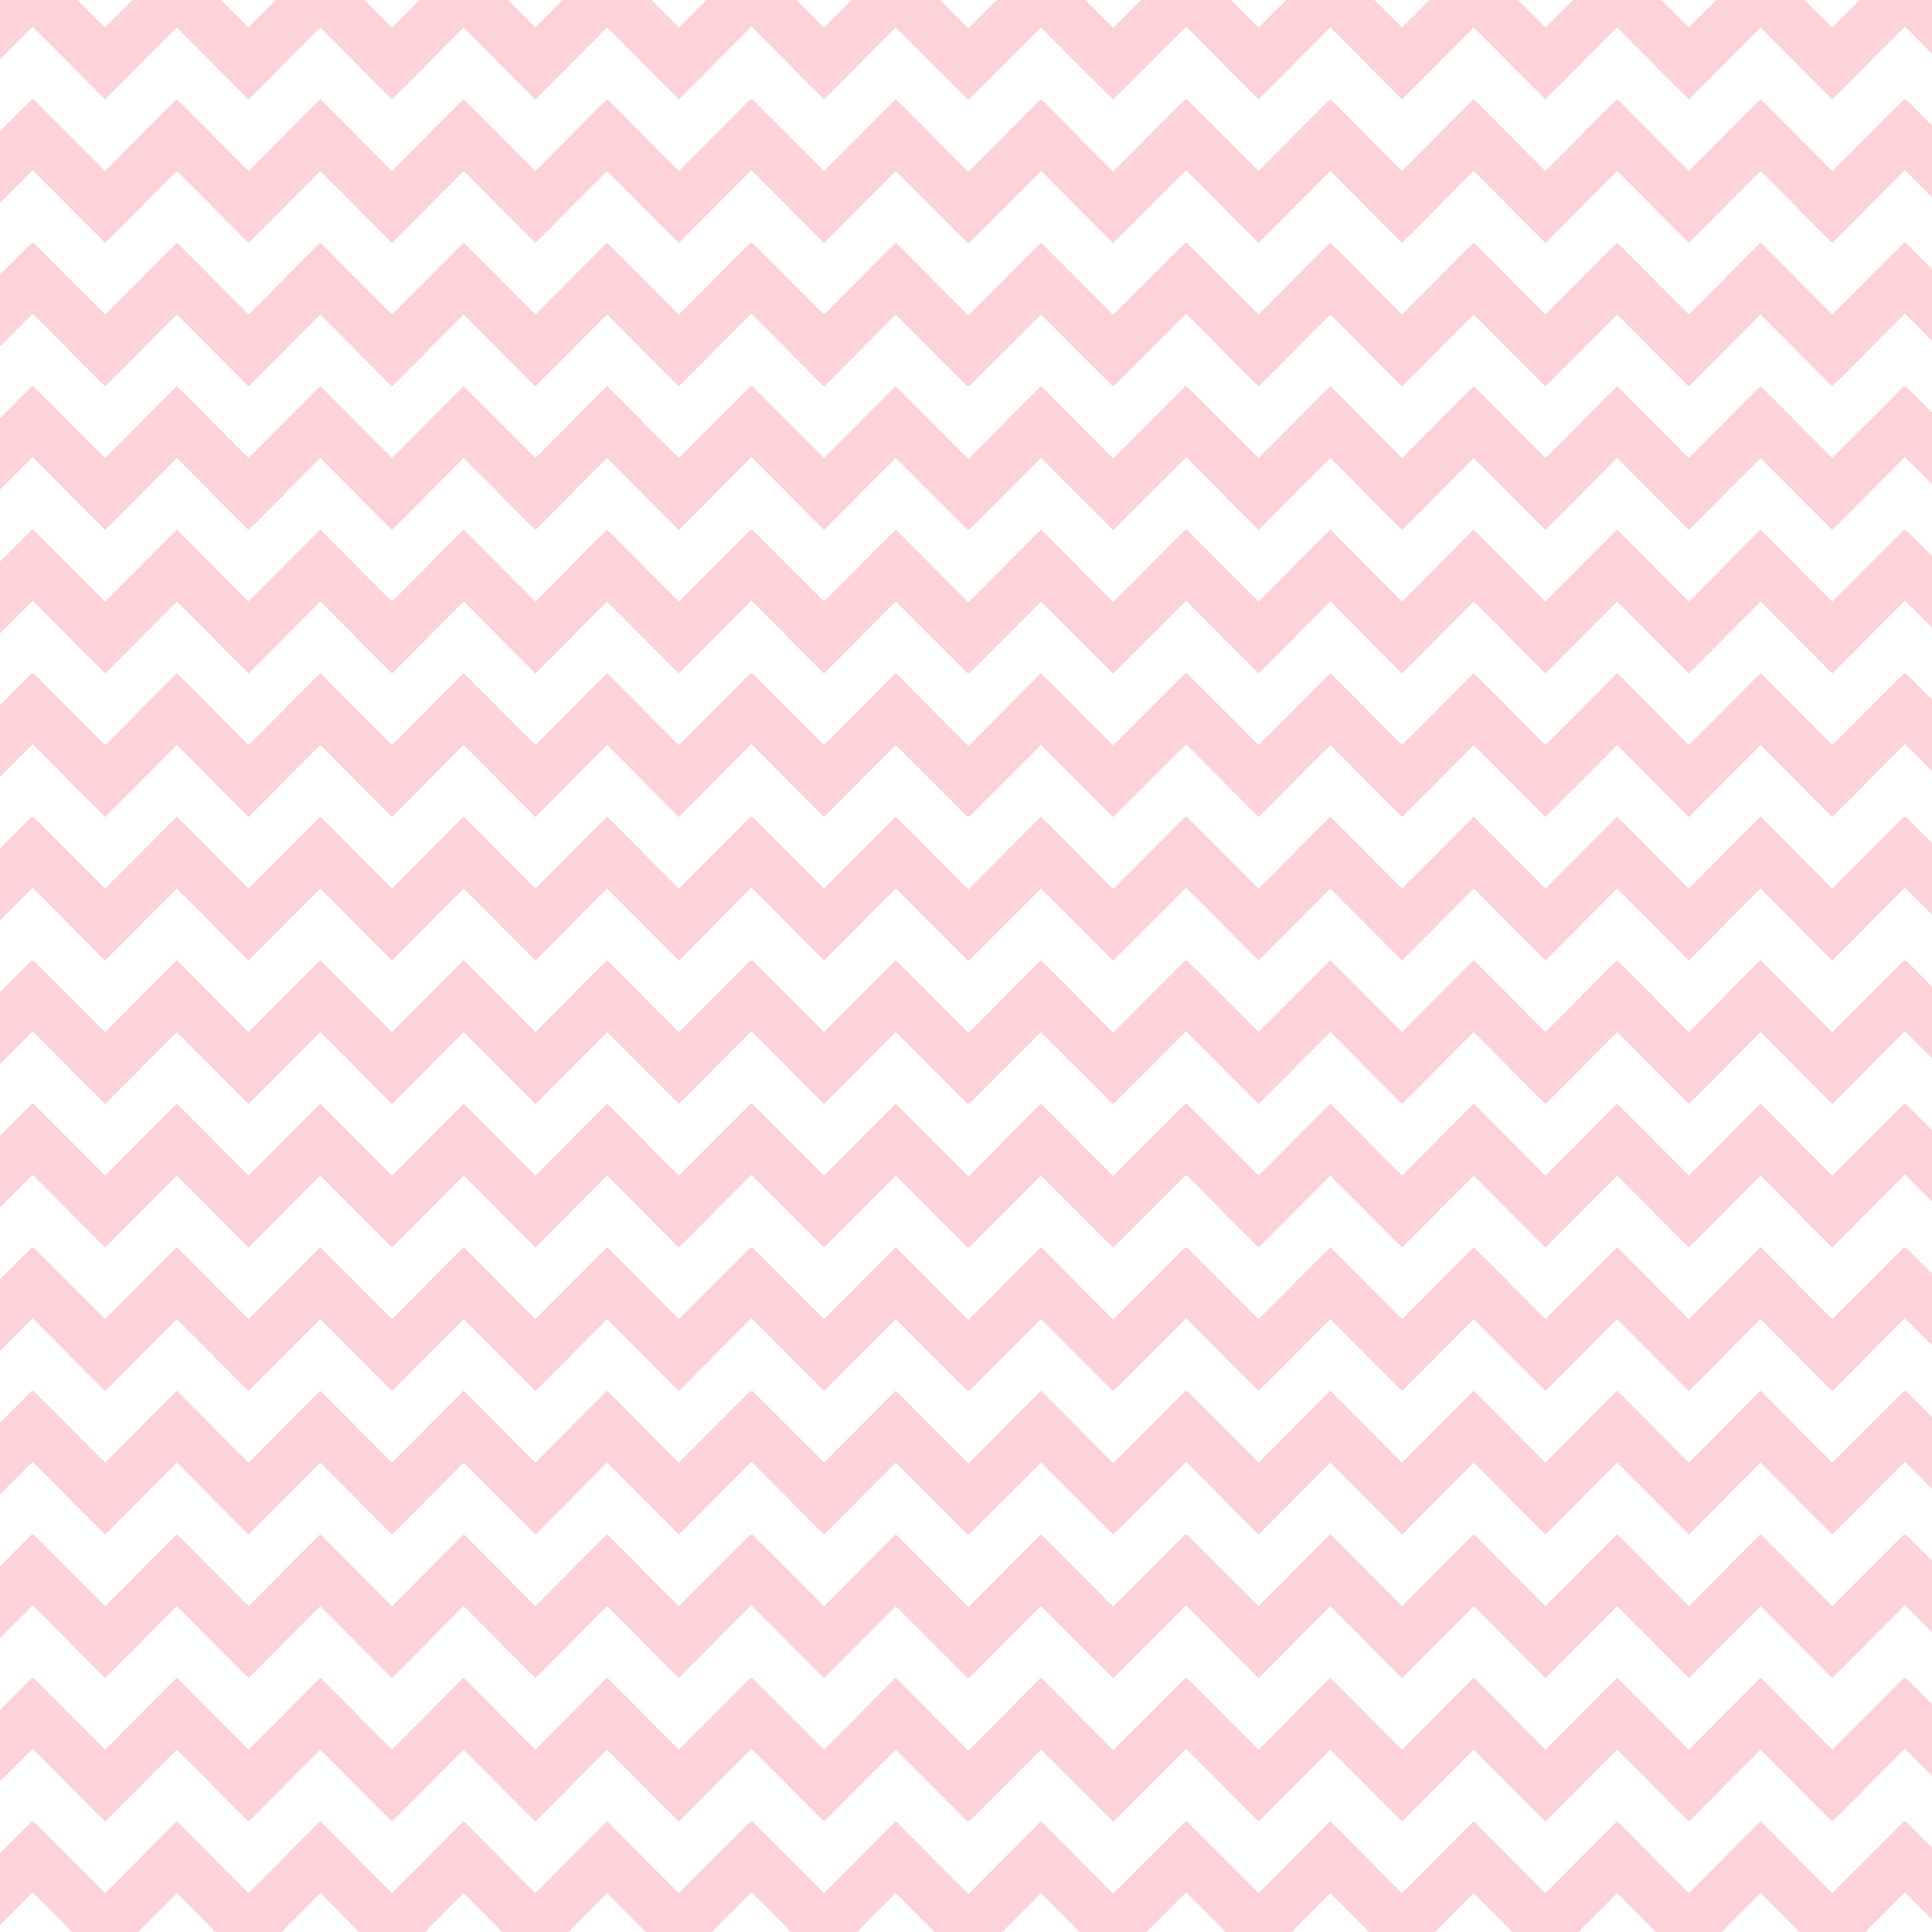 Pink and white chevron wallpaper wallpapersafari for Pink and white wallpaper